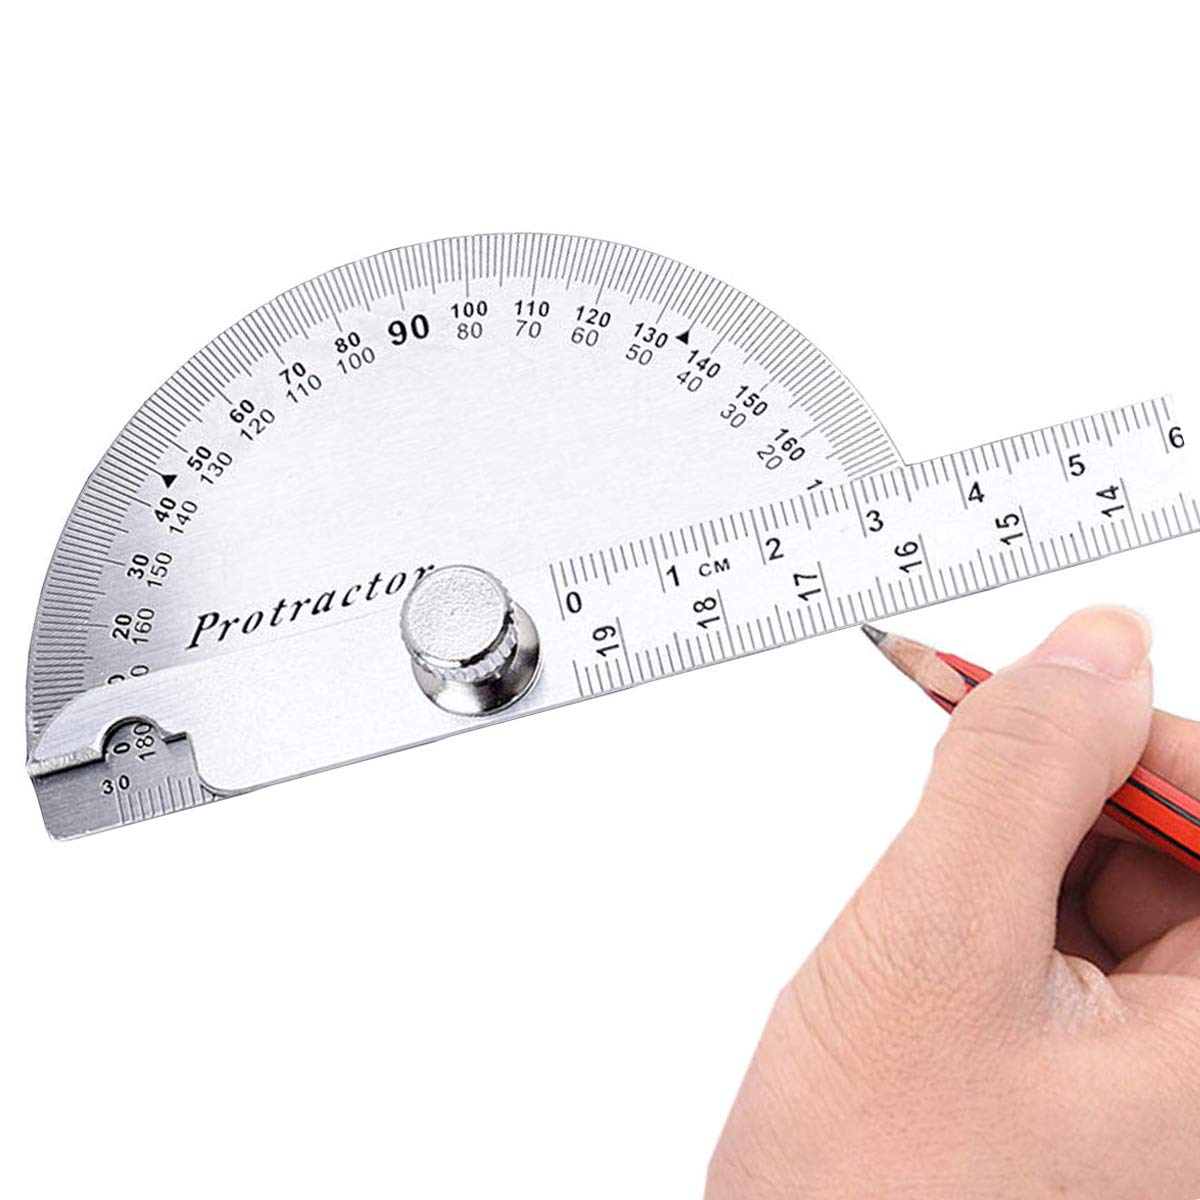 150mm Angle Finder Protractor 0-180 Degrees Swing Arm Protractor Stainless Steel Measuring Ruler Durable Metal Adjustable General Ruler Layout Tool